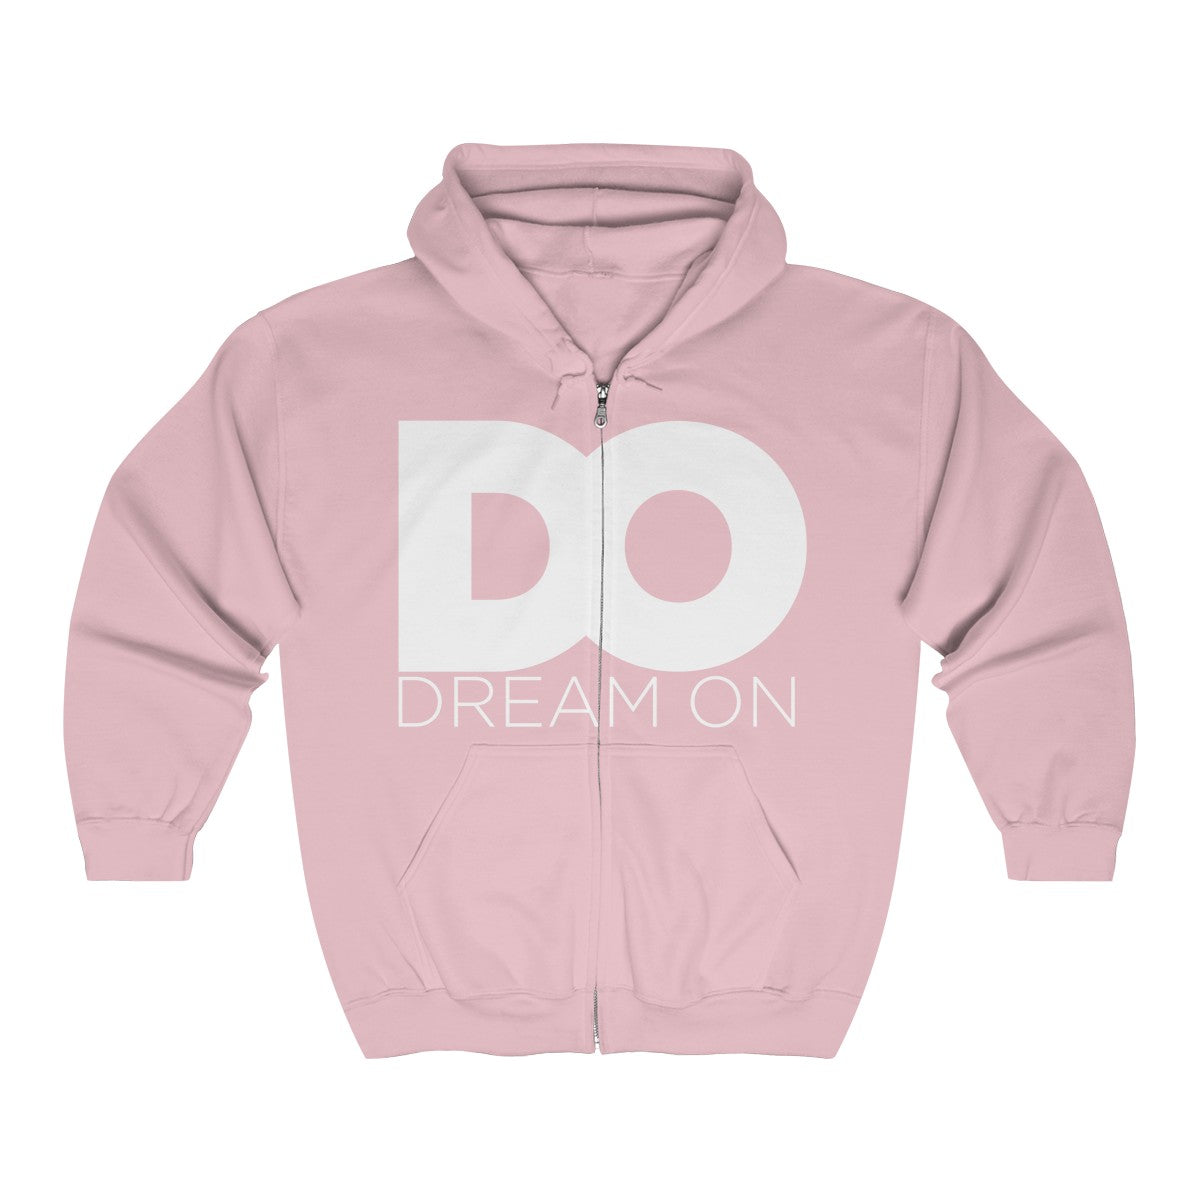 DO Unisex Full Zip Hoodie